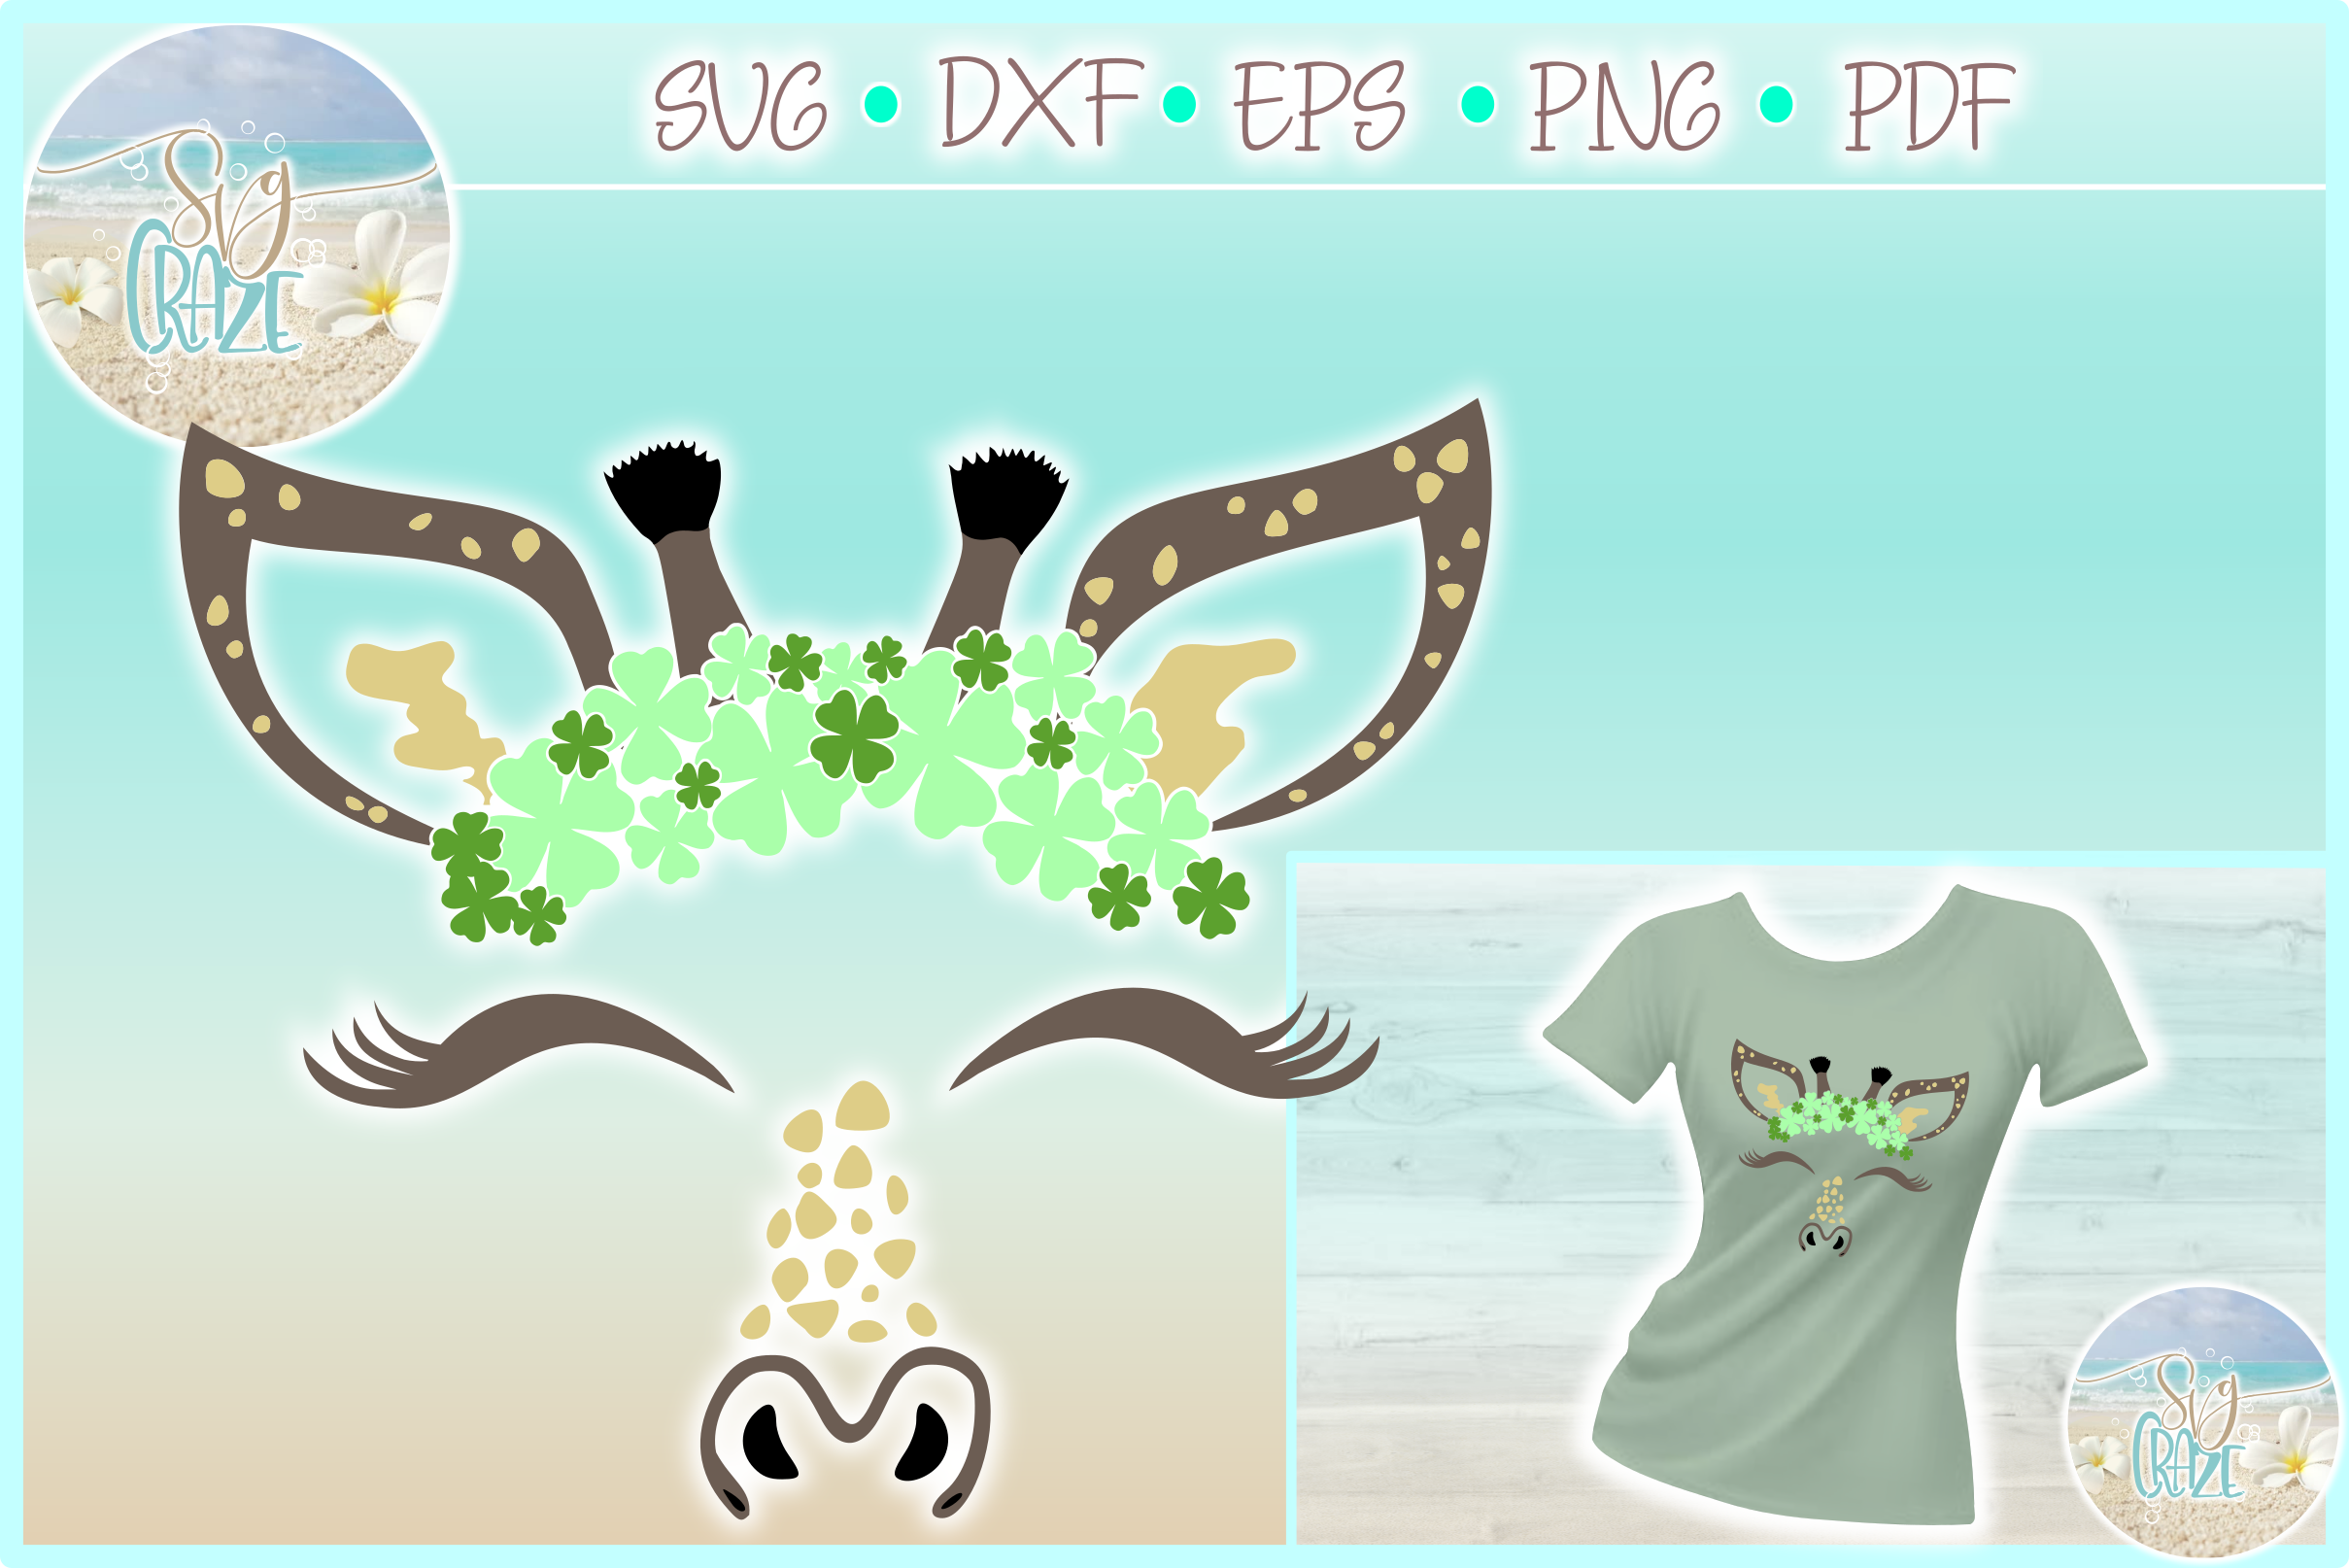 Giraffe Face With Clovers St Patricks Day SVG Dxf Eps Png PD example image 1